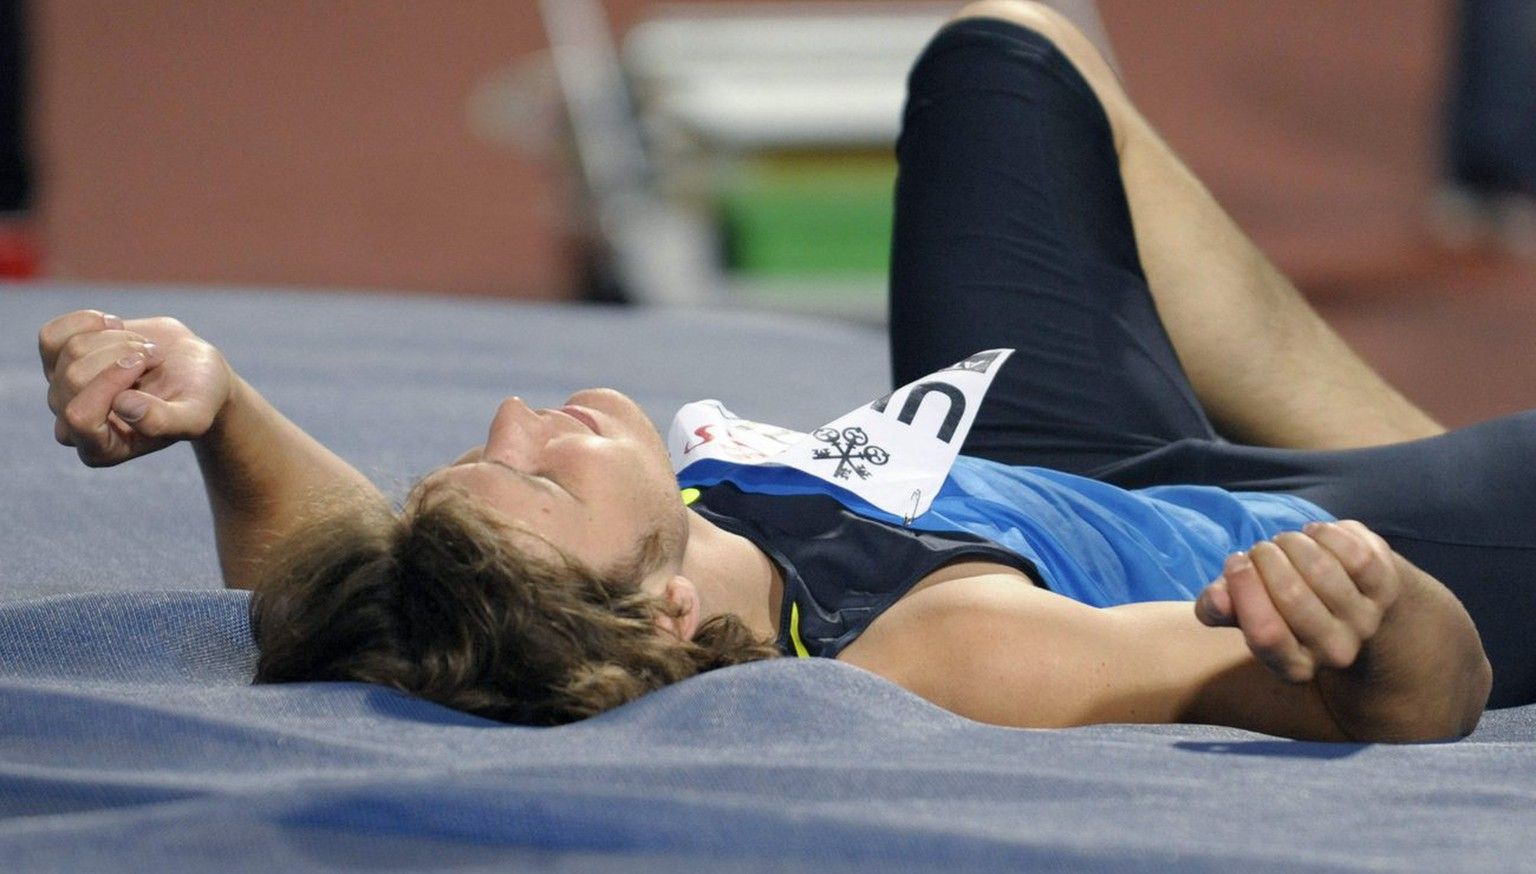 Russian Ivan Ukhov lies on his back after aborting a jump during the men's high jump competition at the Athletissima athletics meeting in the Stade Olympique in Lausanne, Switzerland, Tuesday, September 2, 2008. (KEYSTONE/Laurent Gillieron)